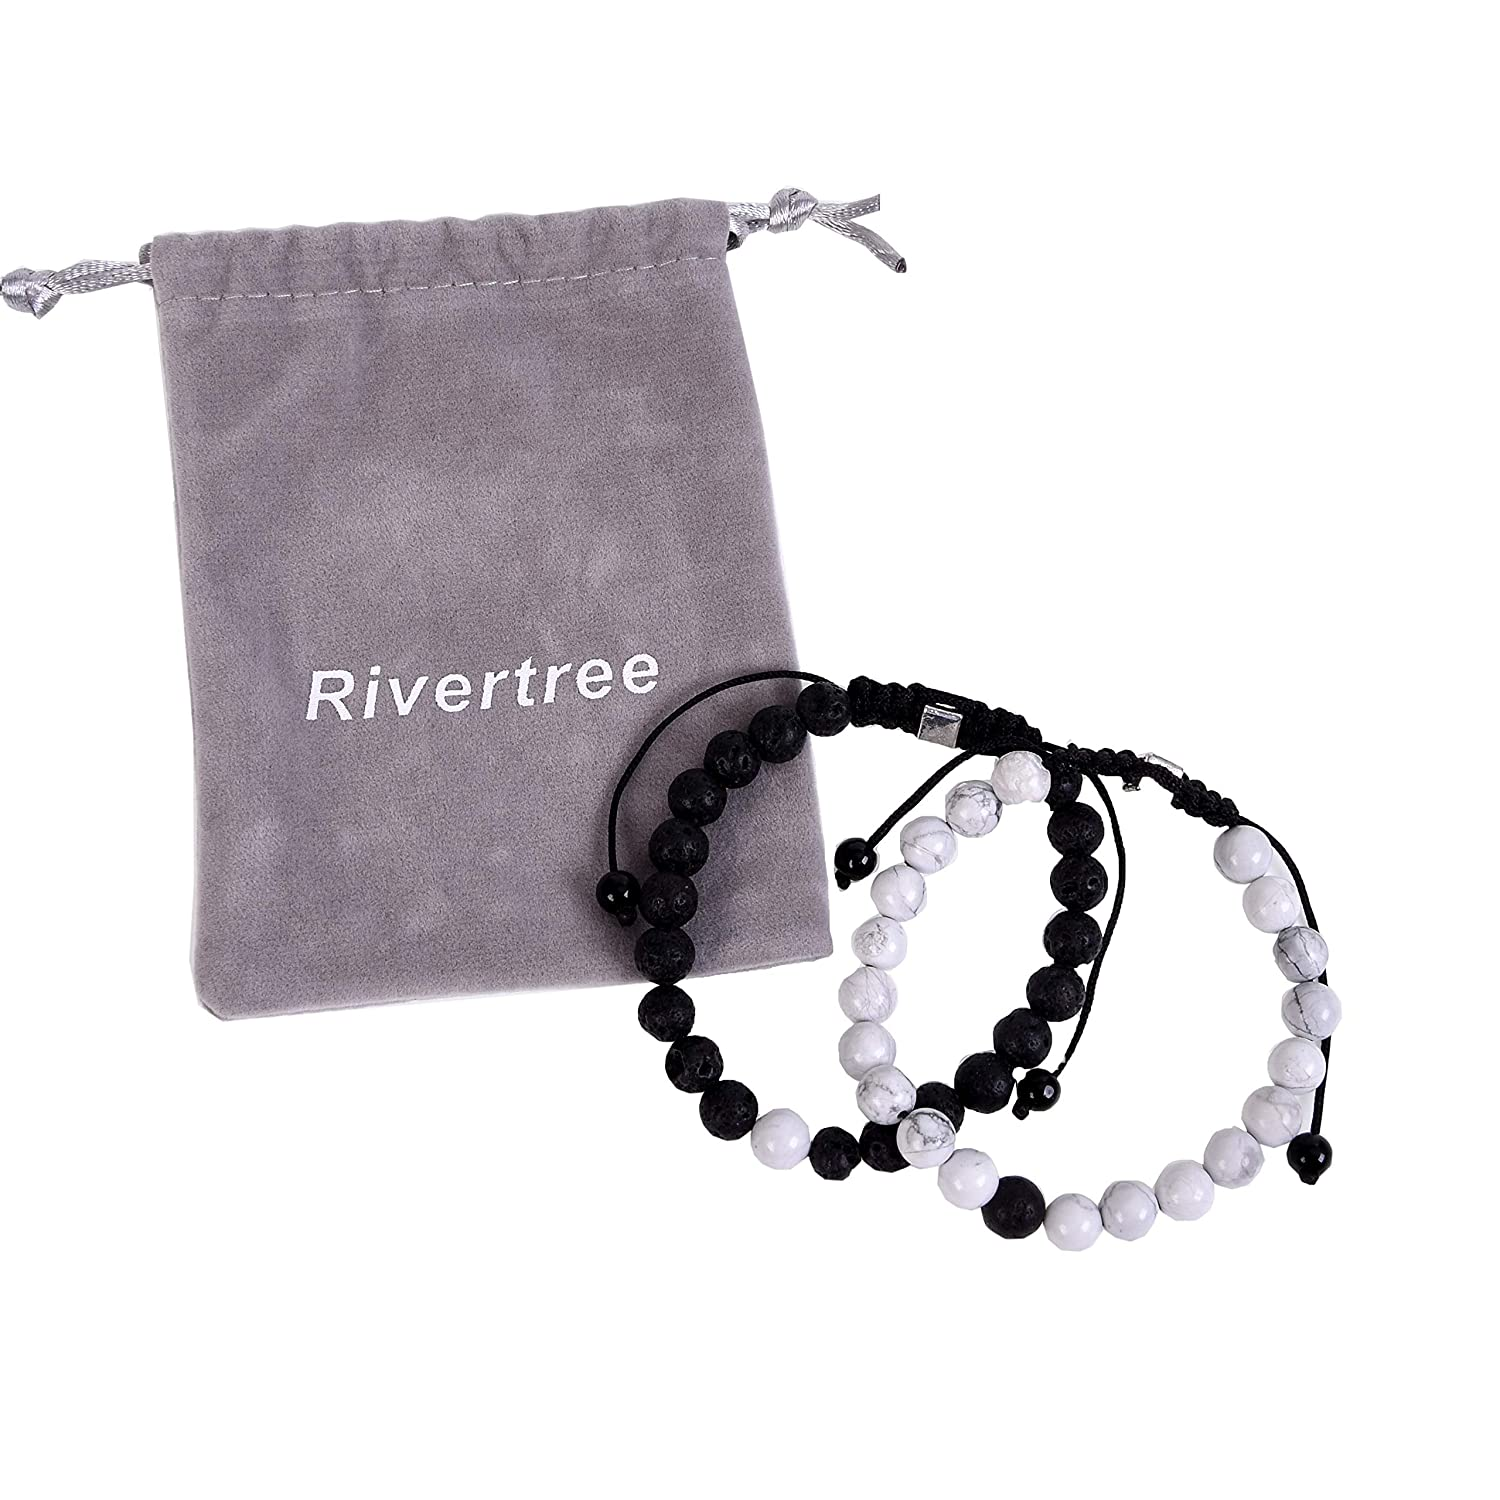 Black and White Distance Bracelets for Couples and Best Friend - Natural Lava Howlite Sone beads with Braided Rope Adjustable RIVERTREE 21210